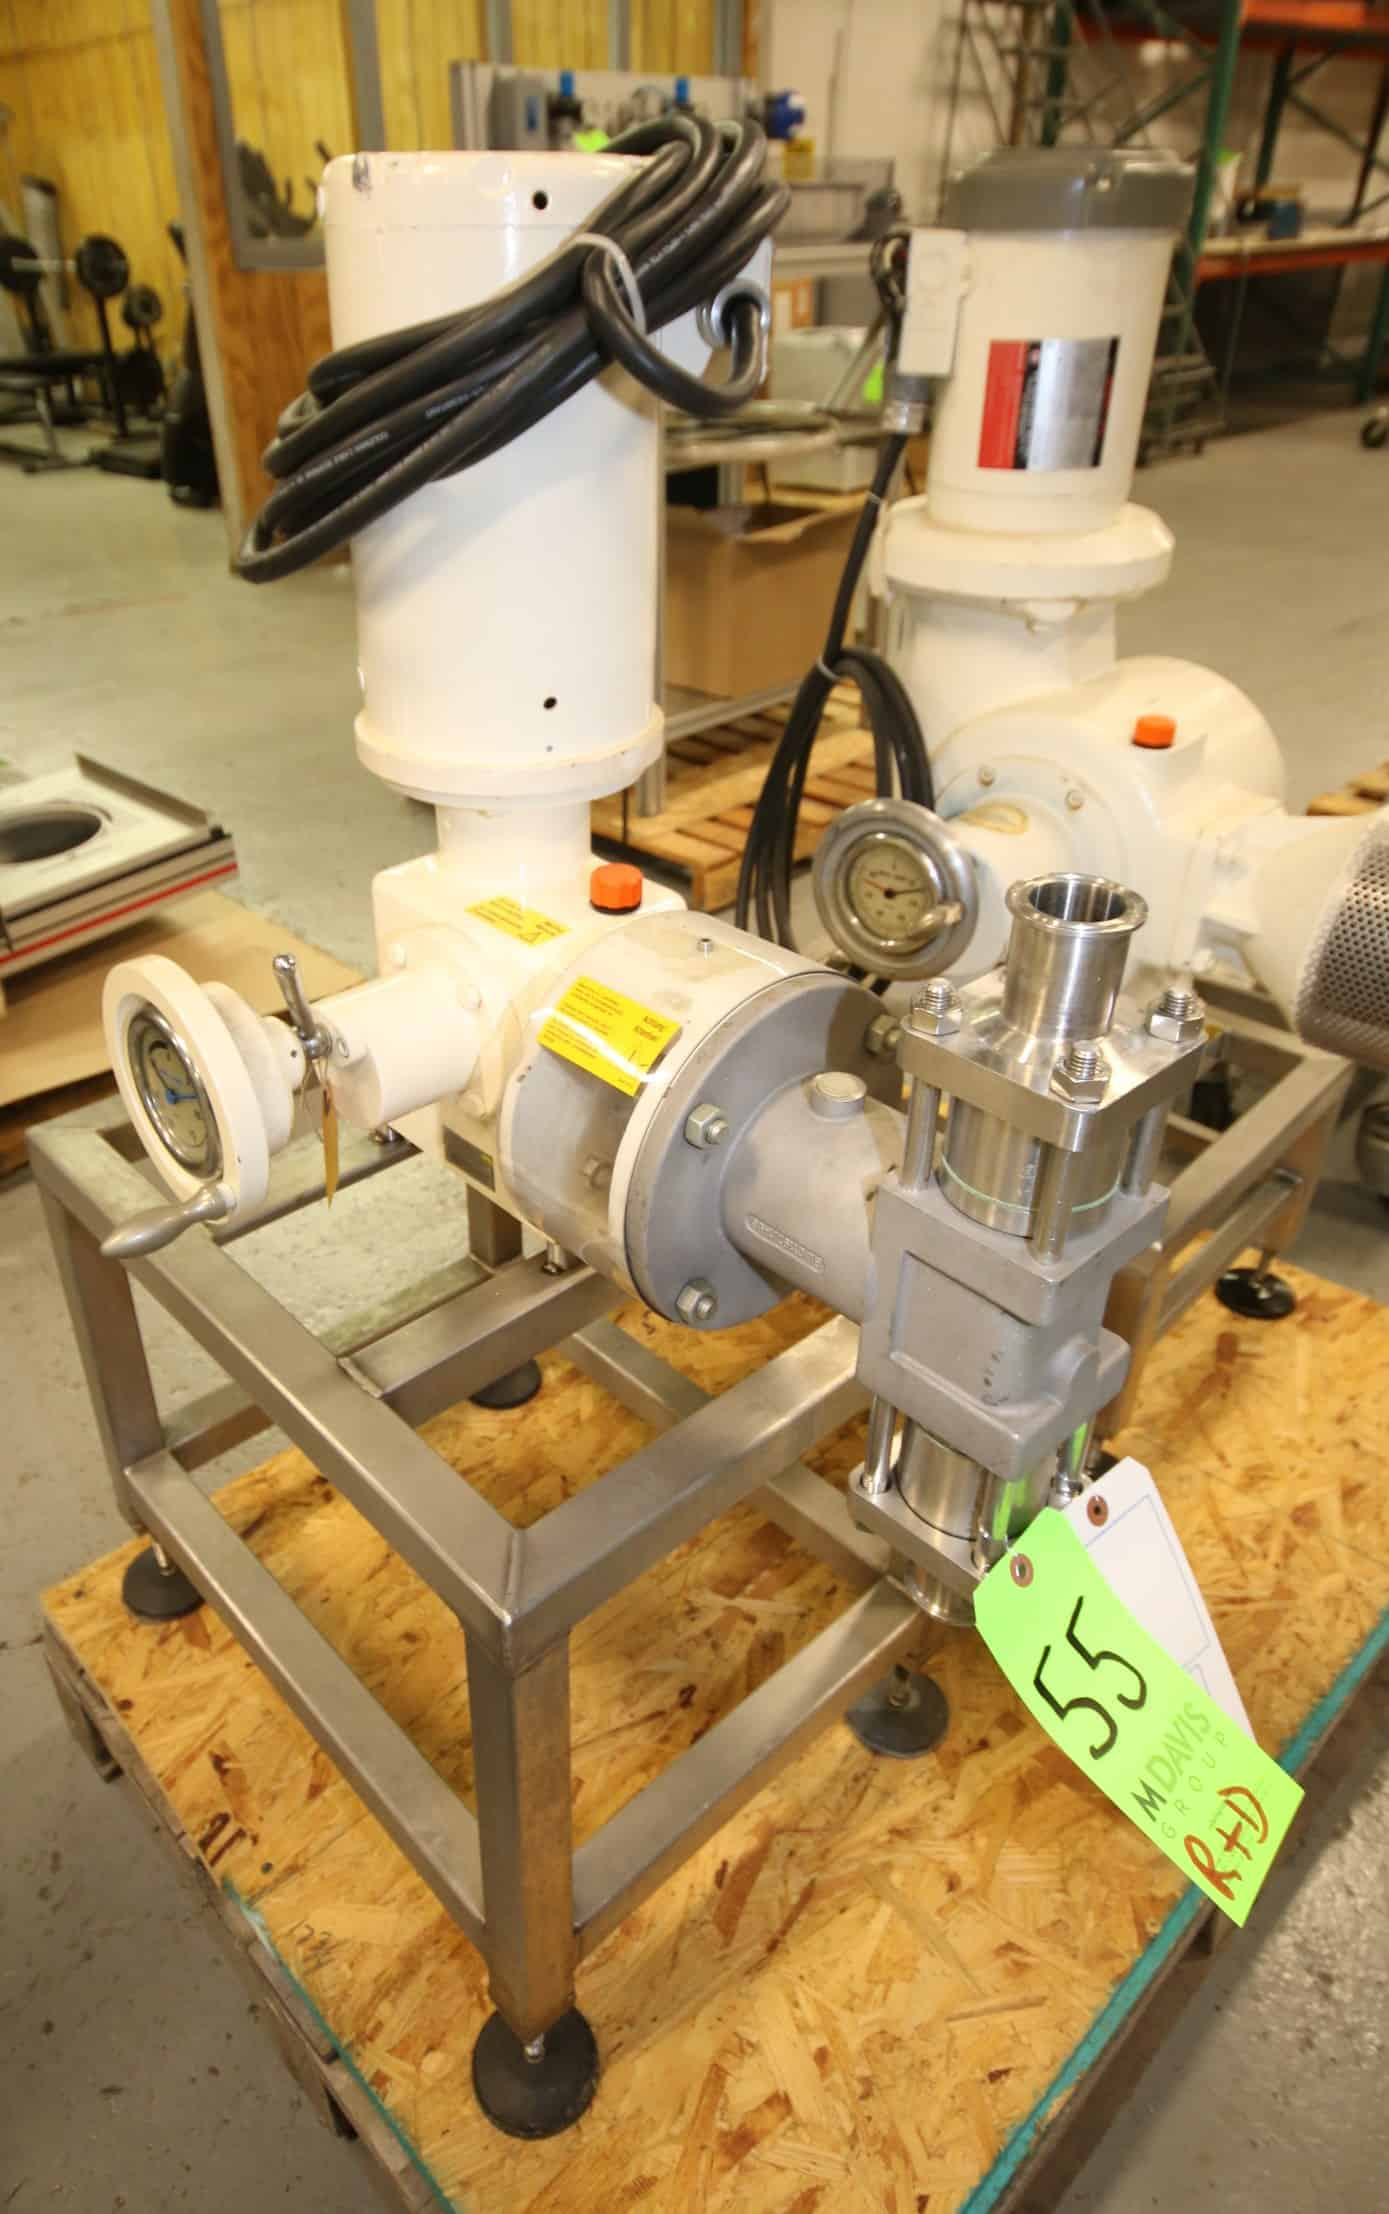 "Bran - Lubbe Metering Pump, Type N-K 31, SN 51 500228 1000, with 1.5"" Clamp Type Connections, Baldor 1.5 hp / 1725 rpm Drive Motor, 208/230/460V 3 Phase, Mounted on S/S Frame"